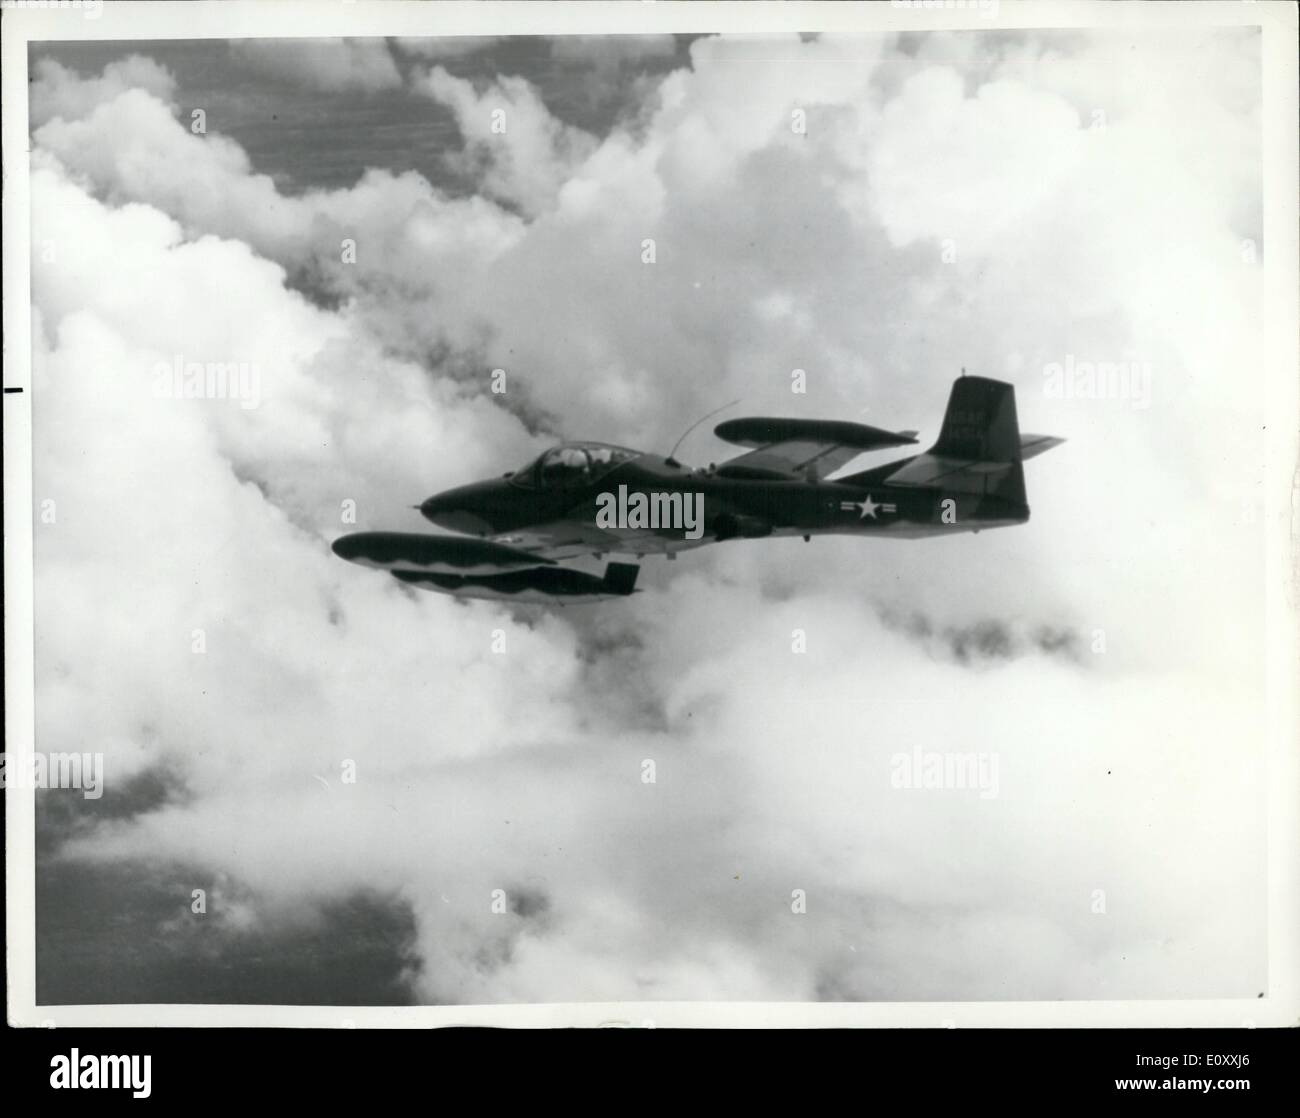 Jan. 01, 1968 - The U.S. Air force will use the A-37 jet fighter to train over 100 Vietnamese Air Force pilots at England Air Force Base, Louisiana. Each student will receive 112 hours of ground training and 85 hours of flying training. Upon graduation, the pilots will return to the Republic of Vietnam. The A-37built by Cassena Aircraft Company, Wichita, Kansas, is a lightweight, twin-engine, subsonic around attack aircraft designed for close air support of ground force, interdiction and limited warfare - Stock Image